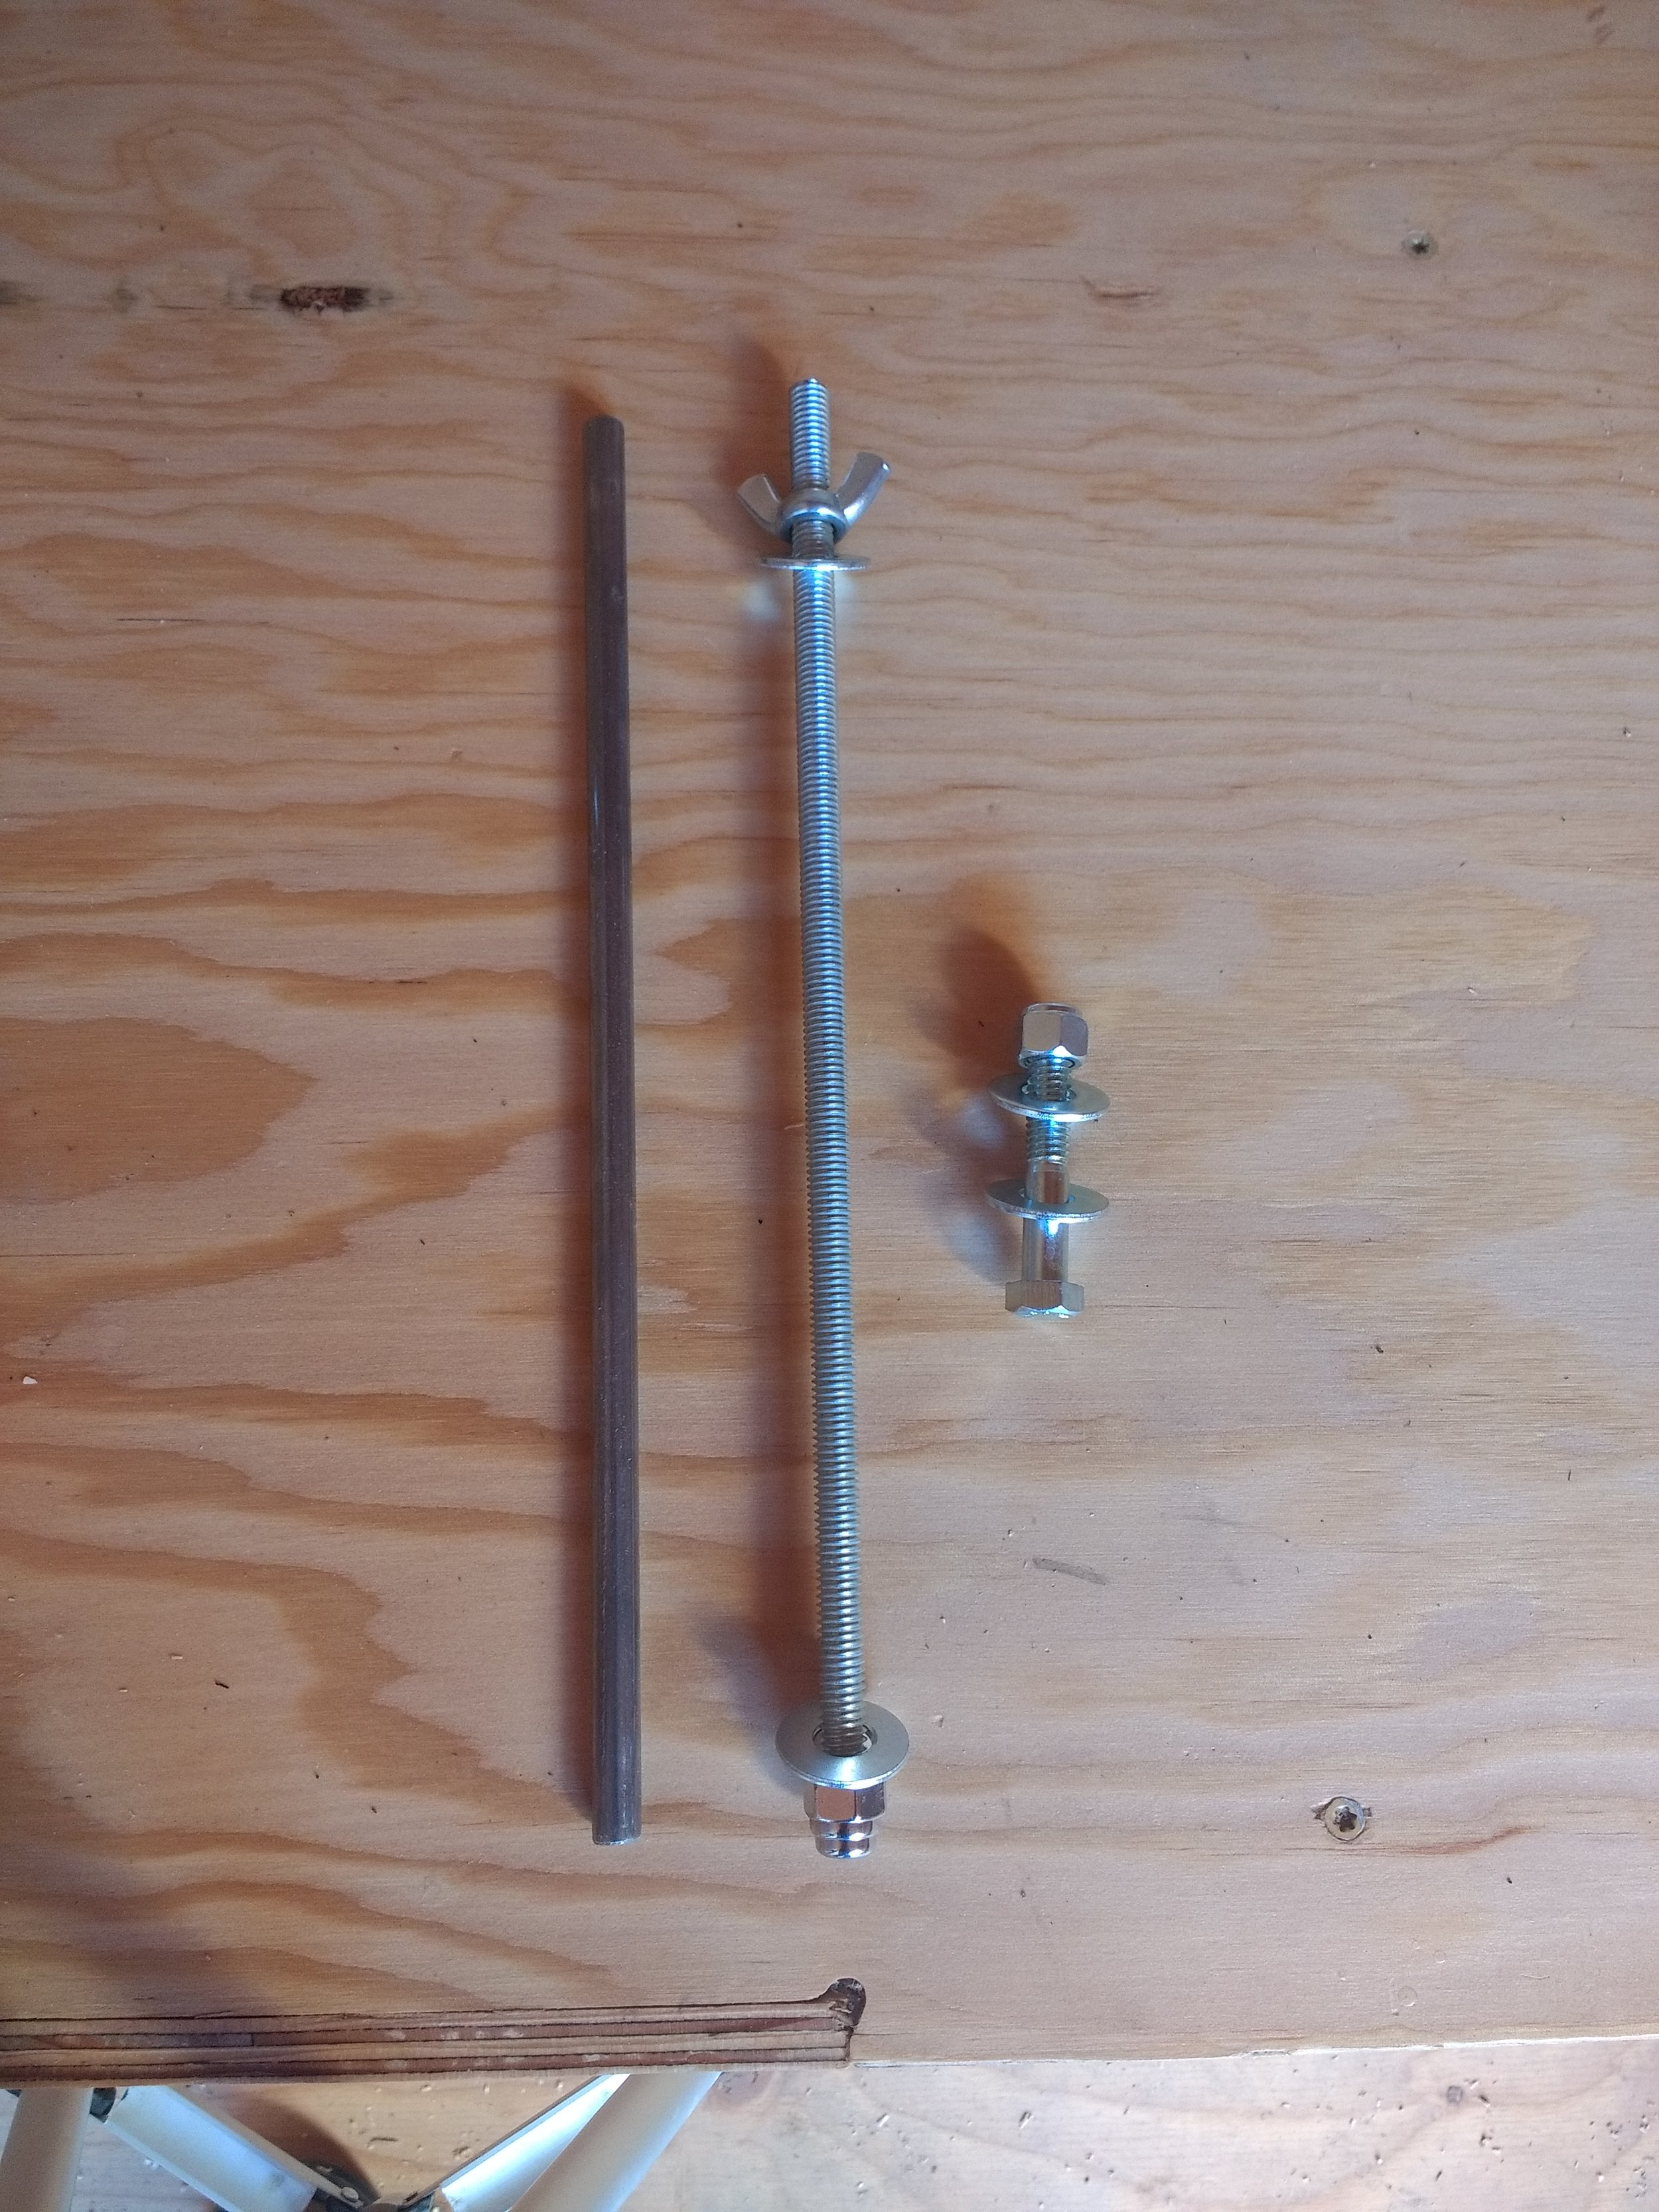 The steel pins, threaded rods, and final bolts we used to get the modules together